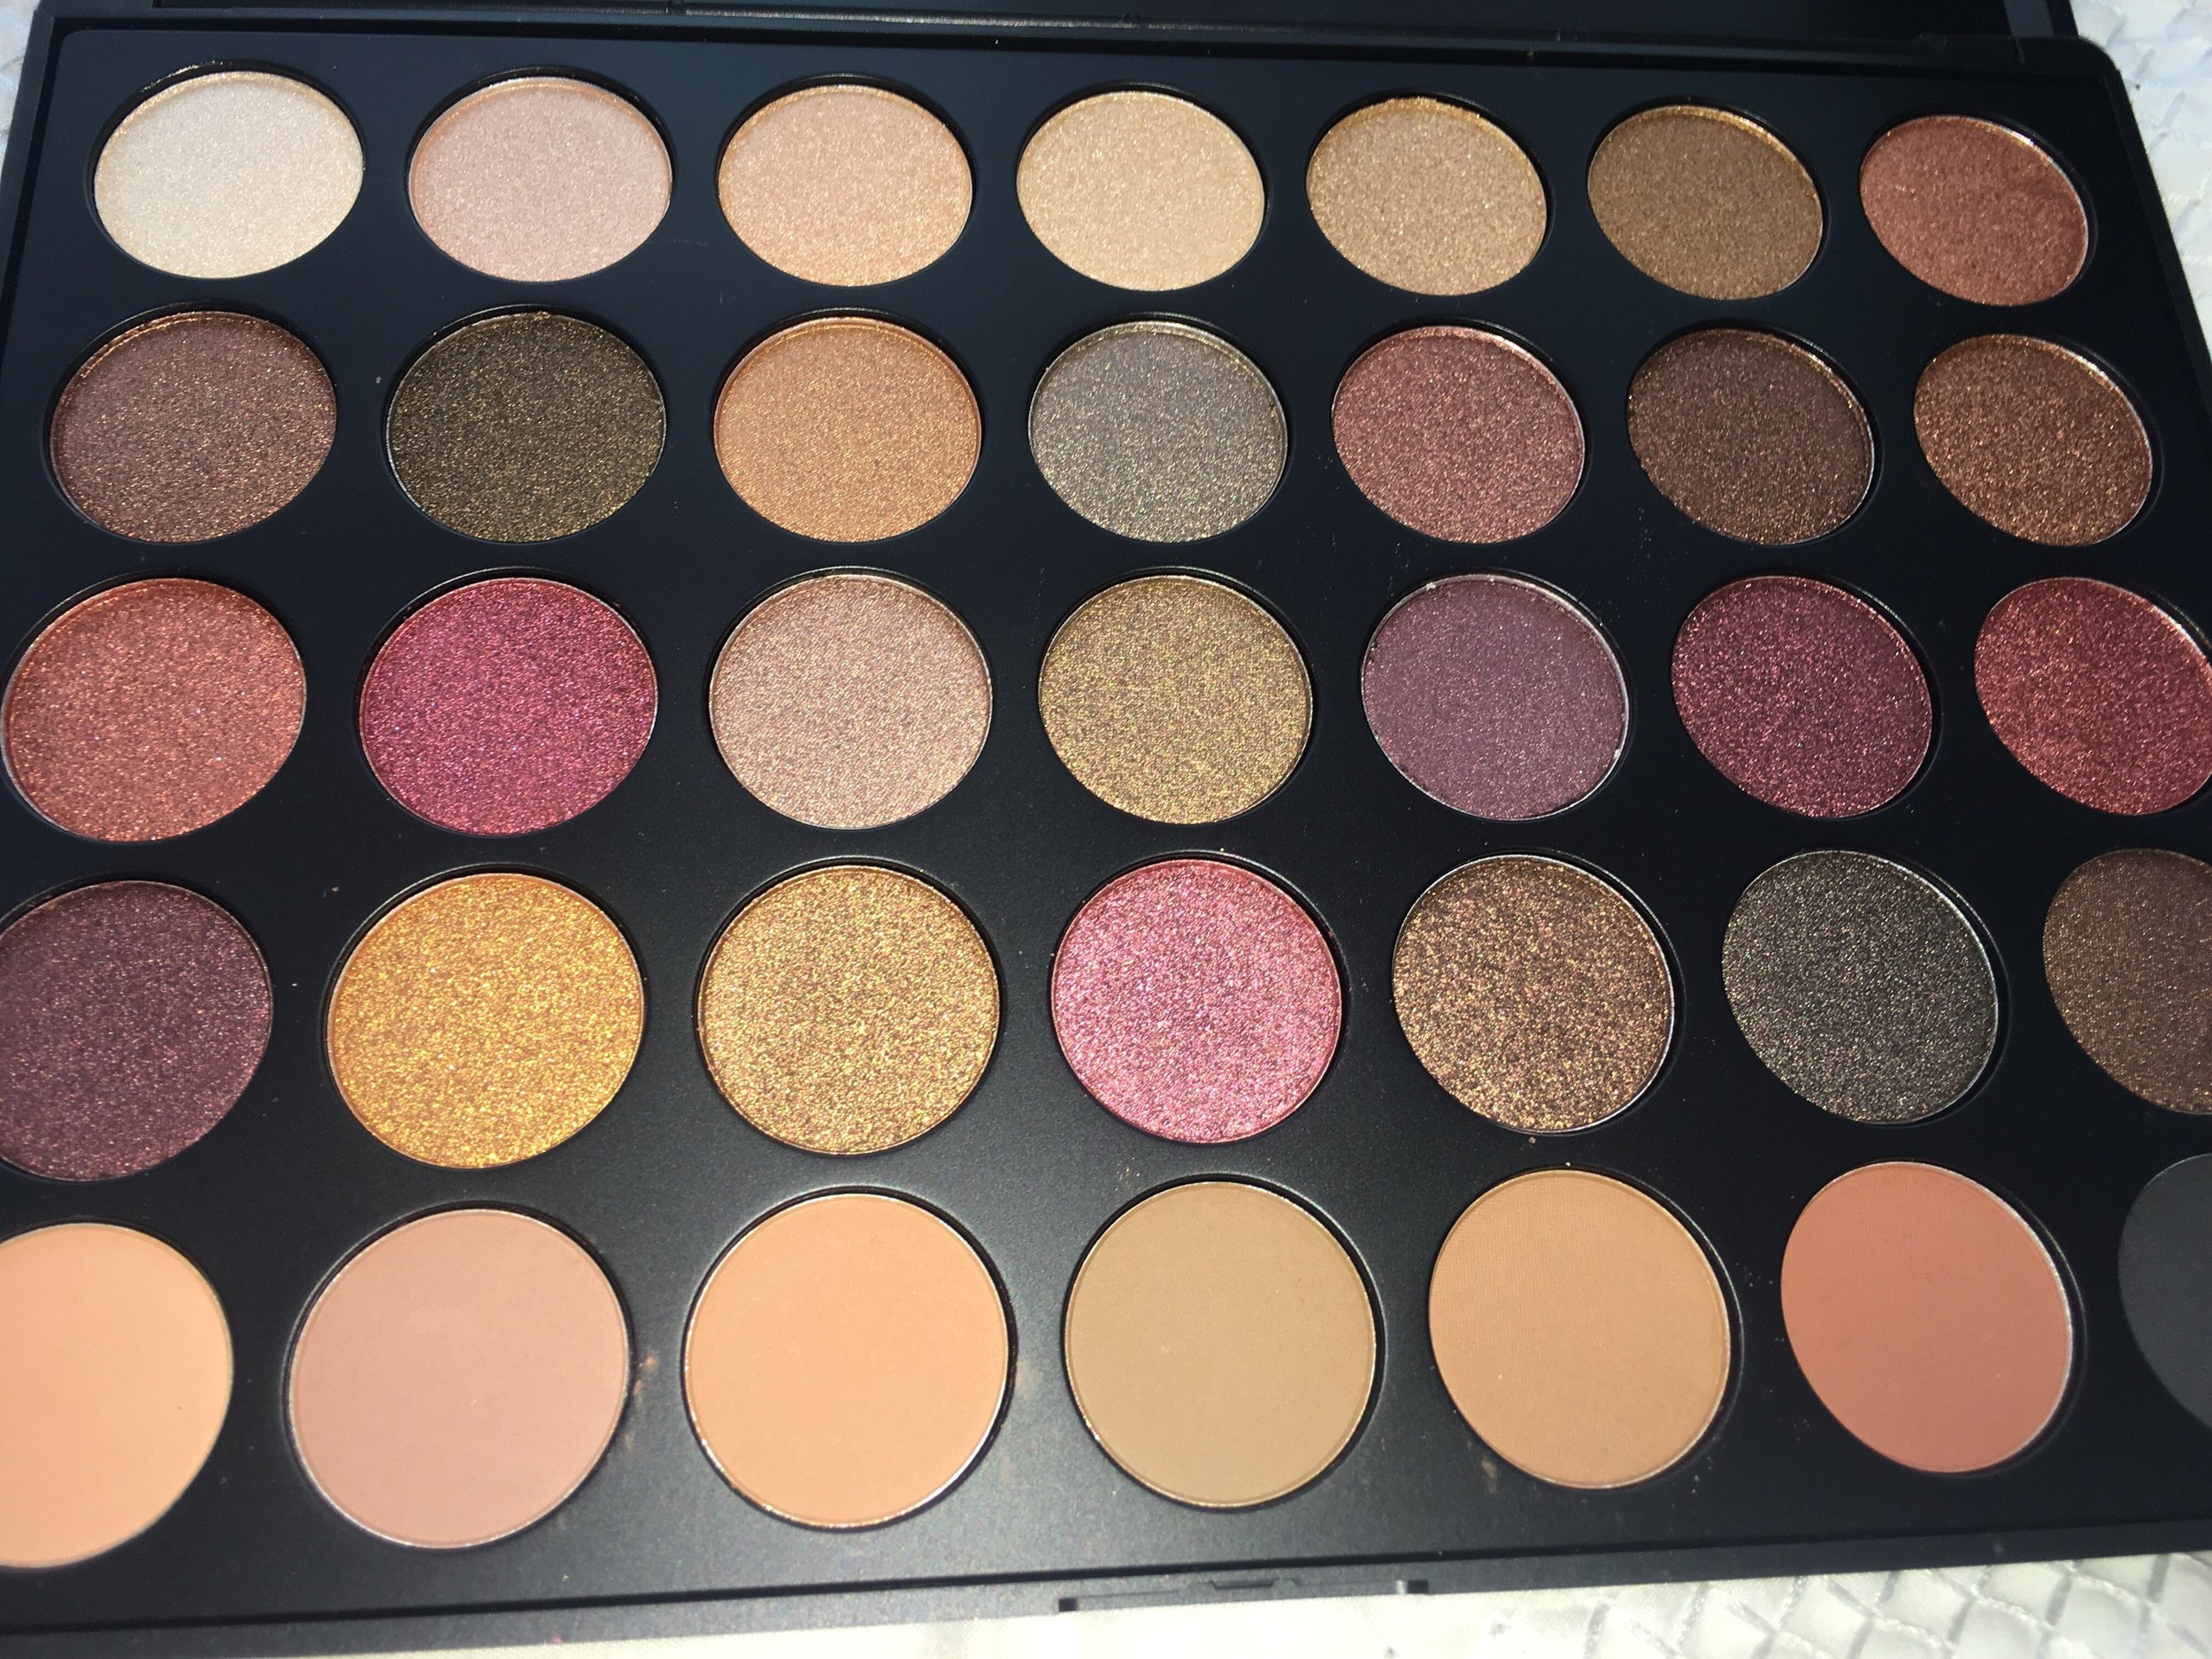 Fall Into Frost Palette by Morphe  (Source:  theodysseyonline.com )